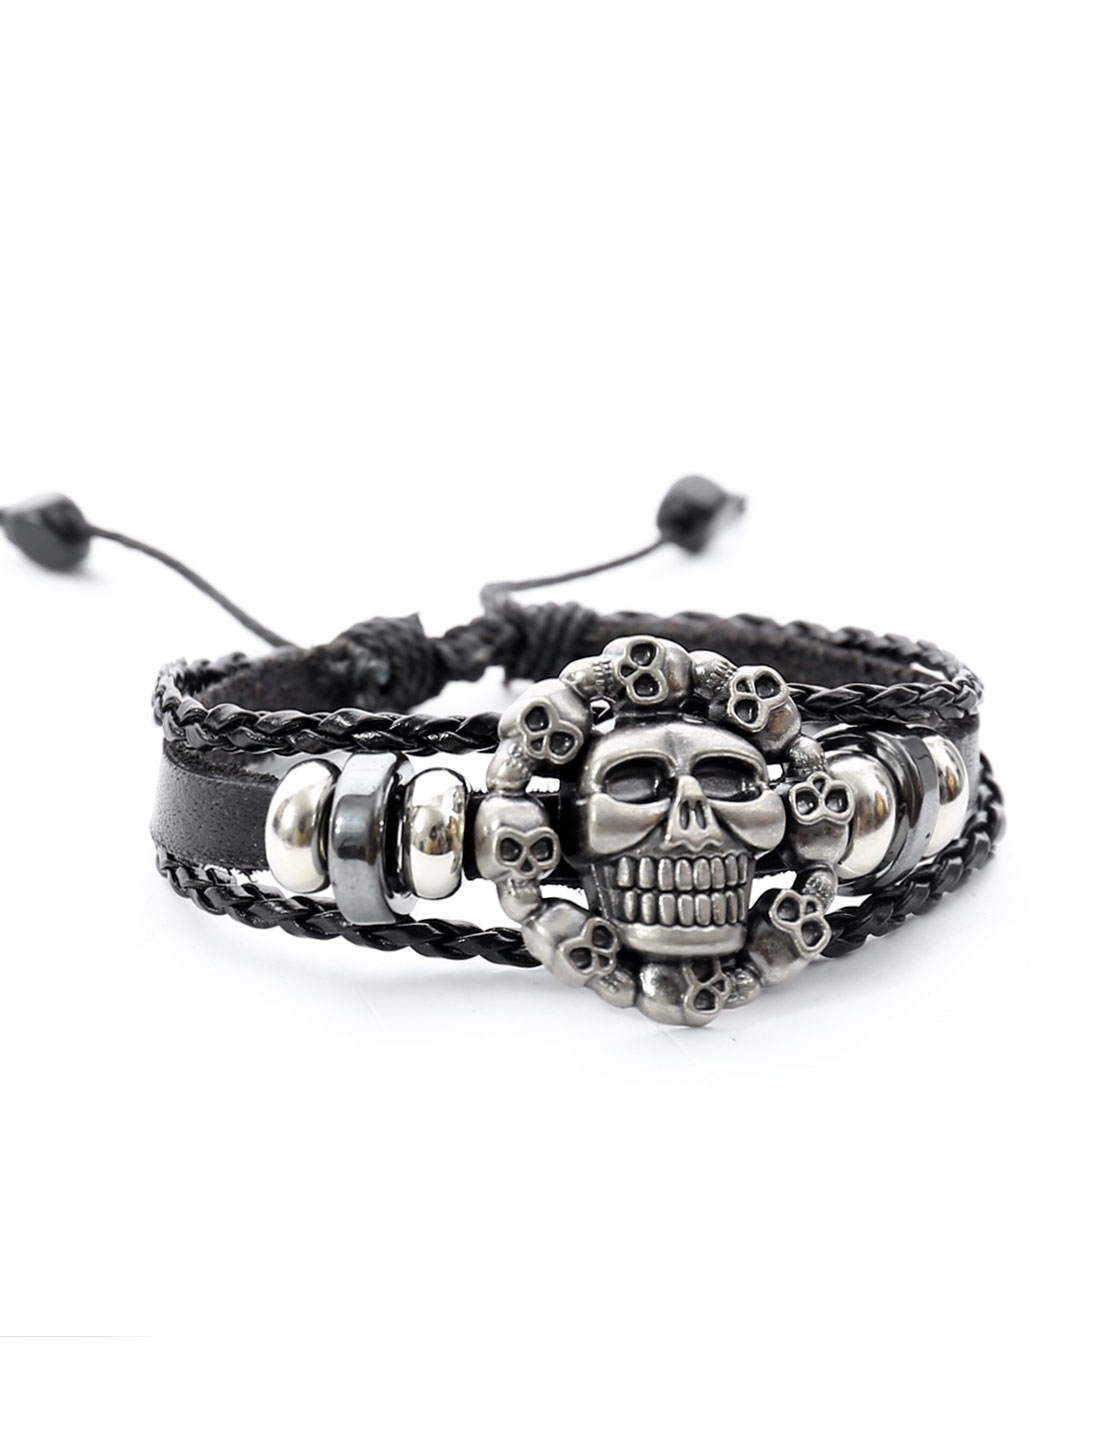 Punk Skulls Leather Charm Wrap Wristband Bracelet Bangle Cuff